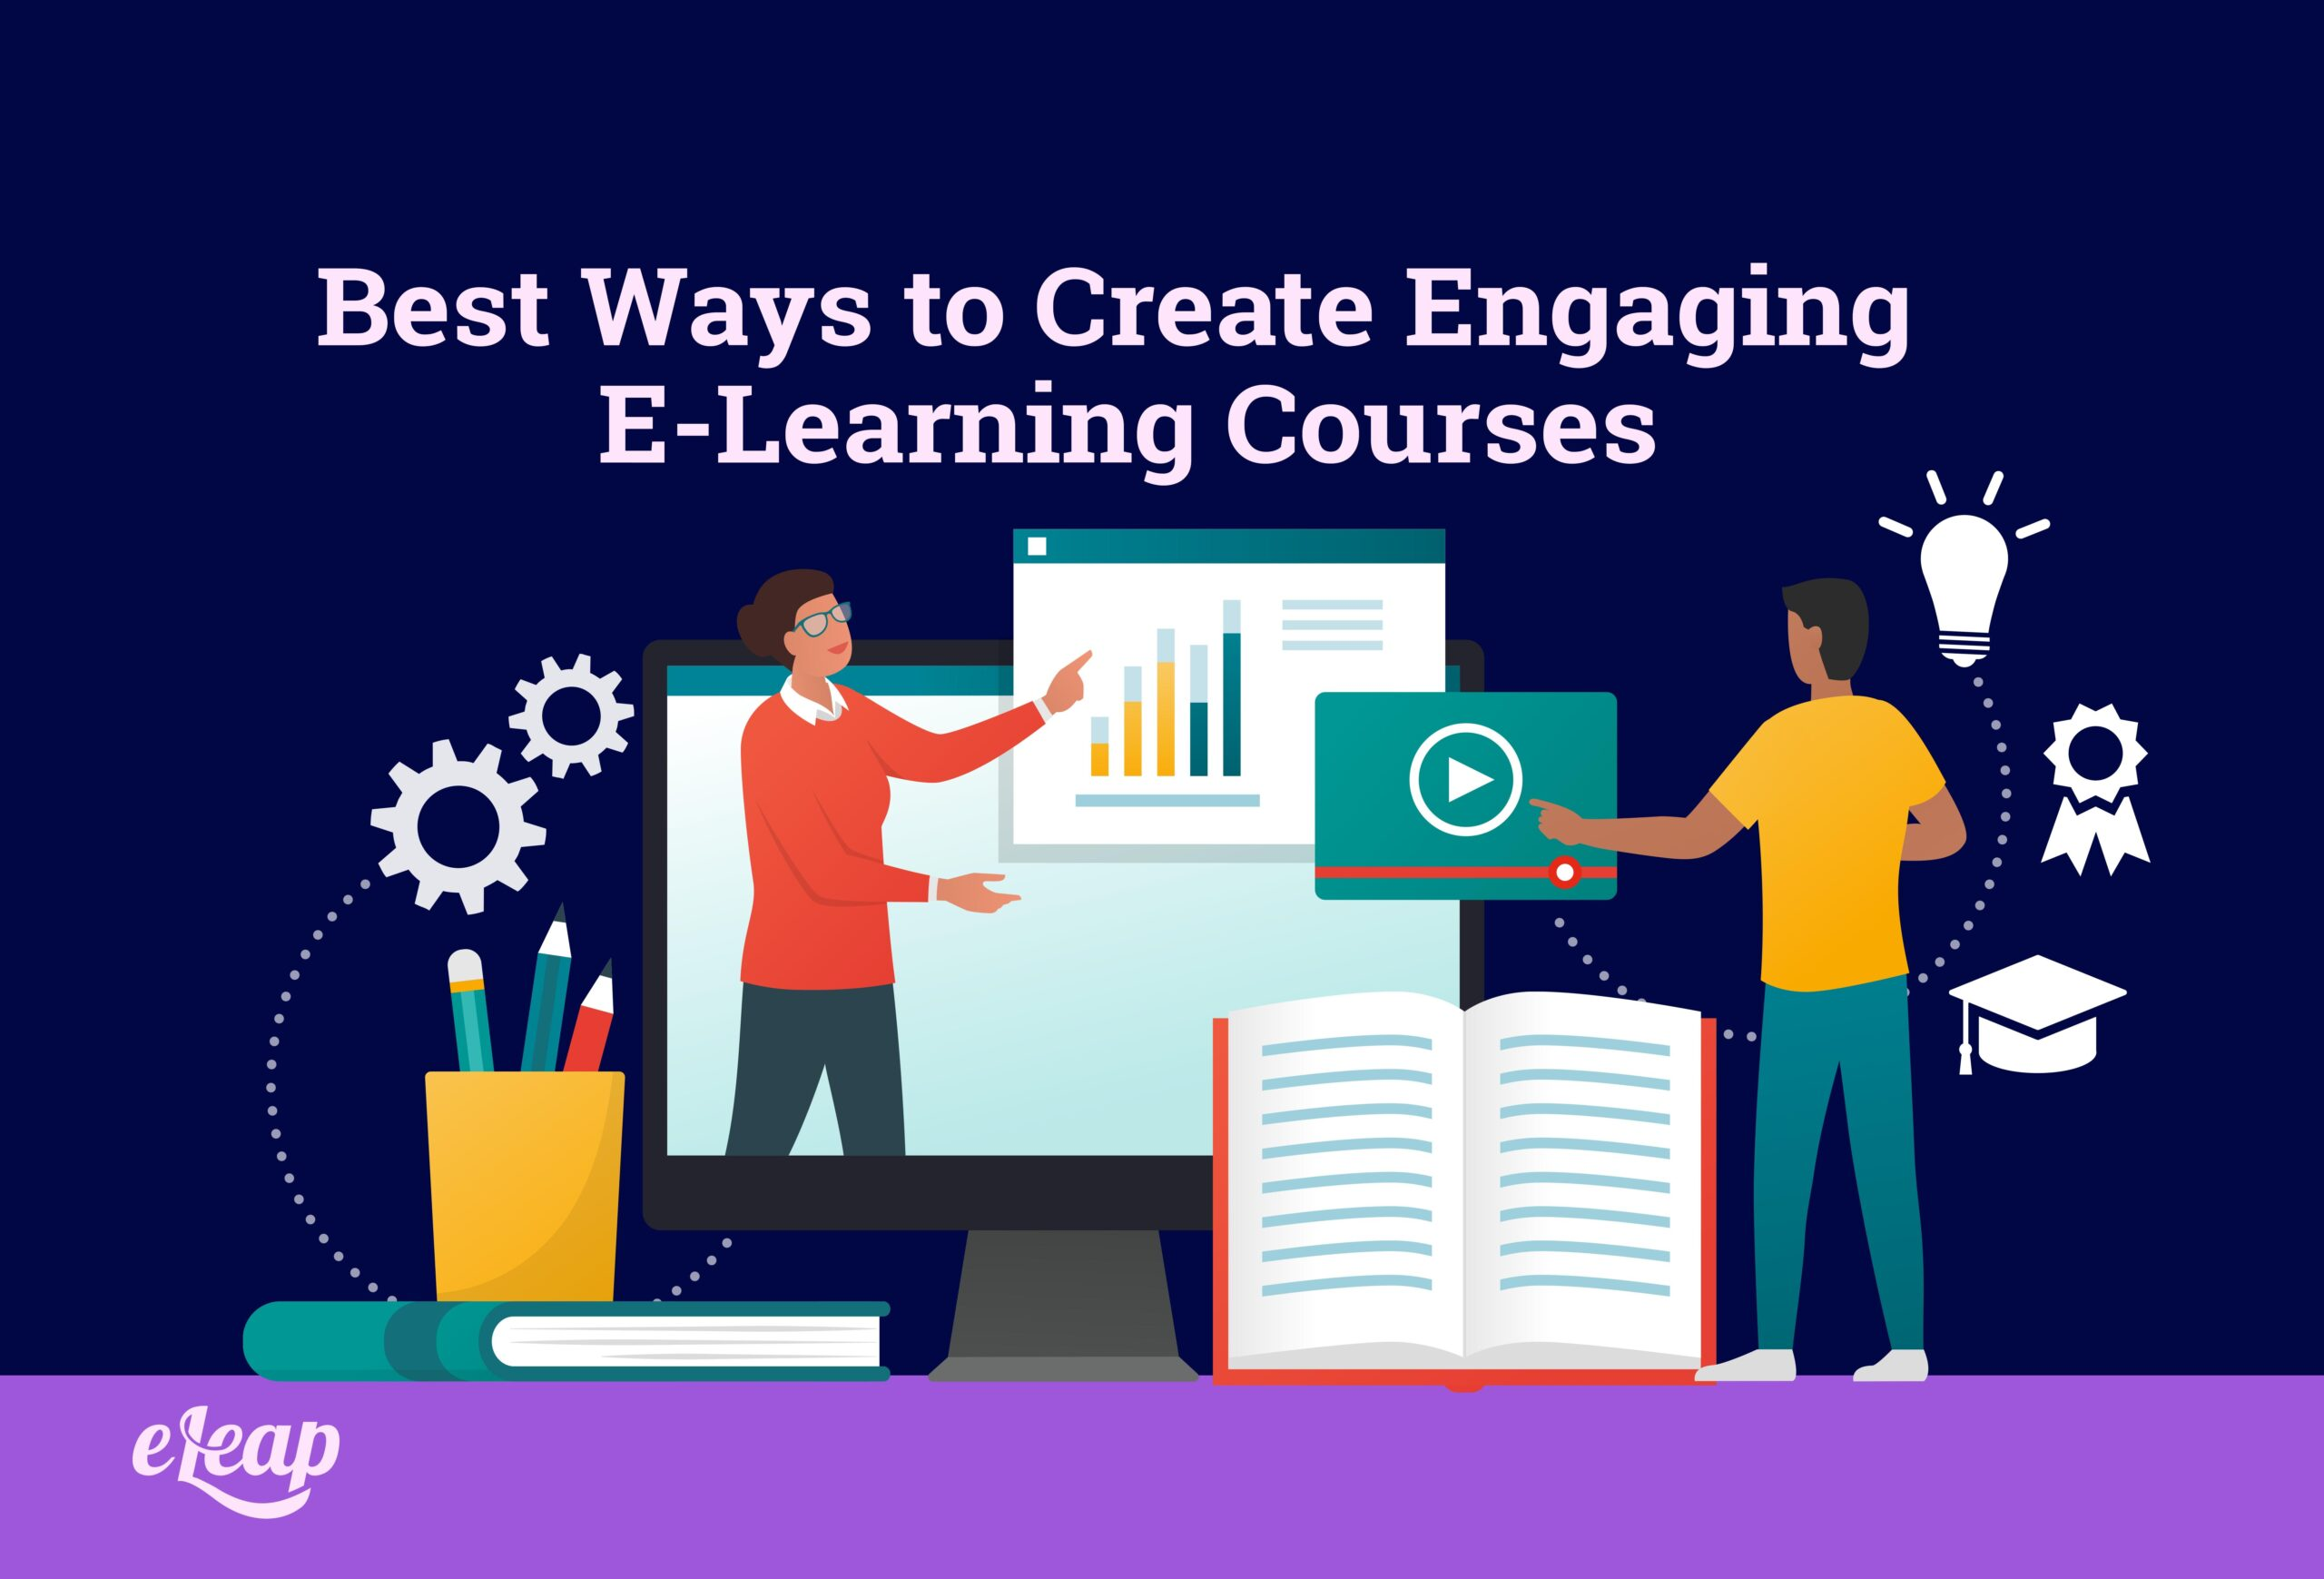 Best Ways to Create Engaging E-Learning Courses